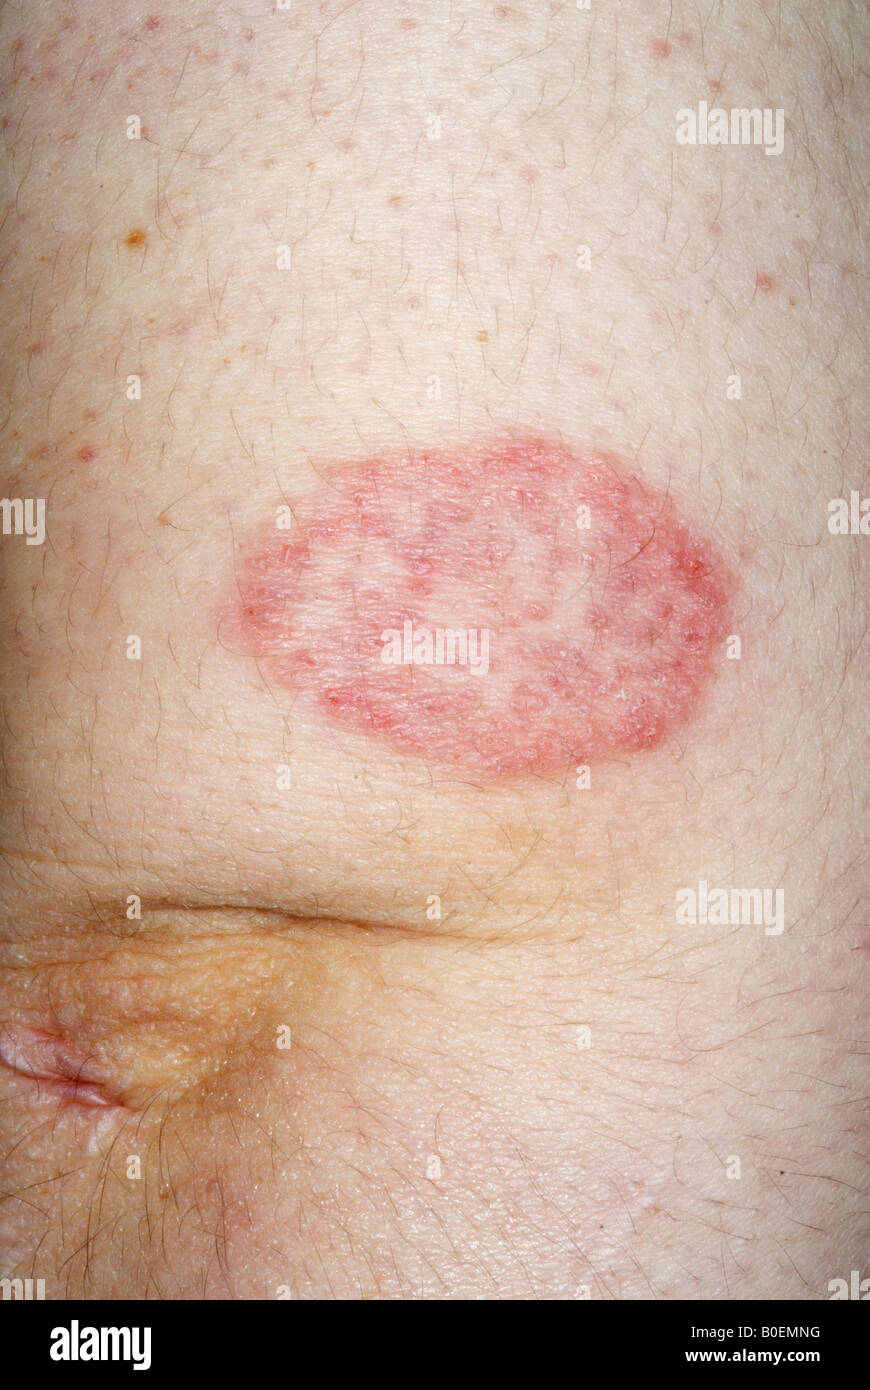 ringworm fungus infection of the skin - Stock Image